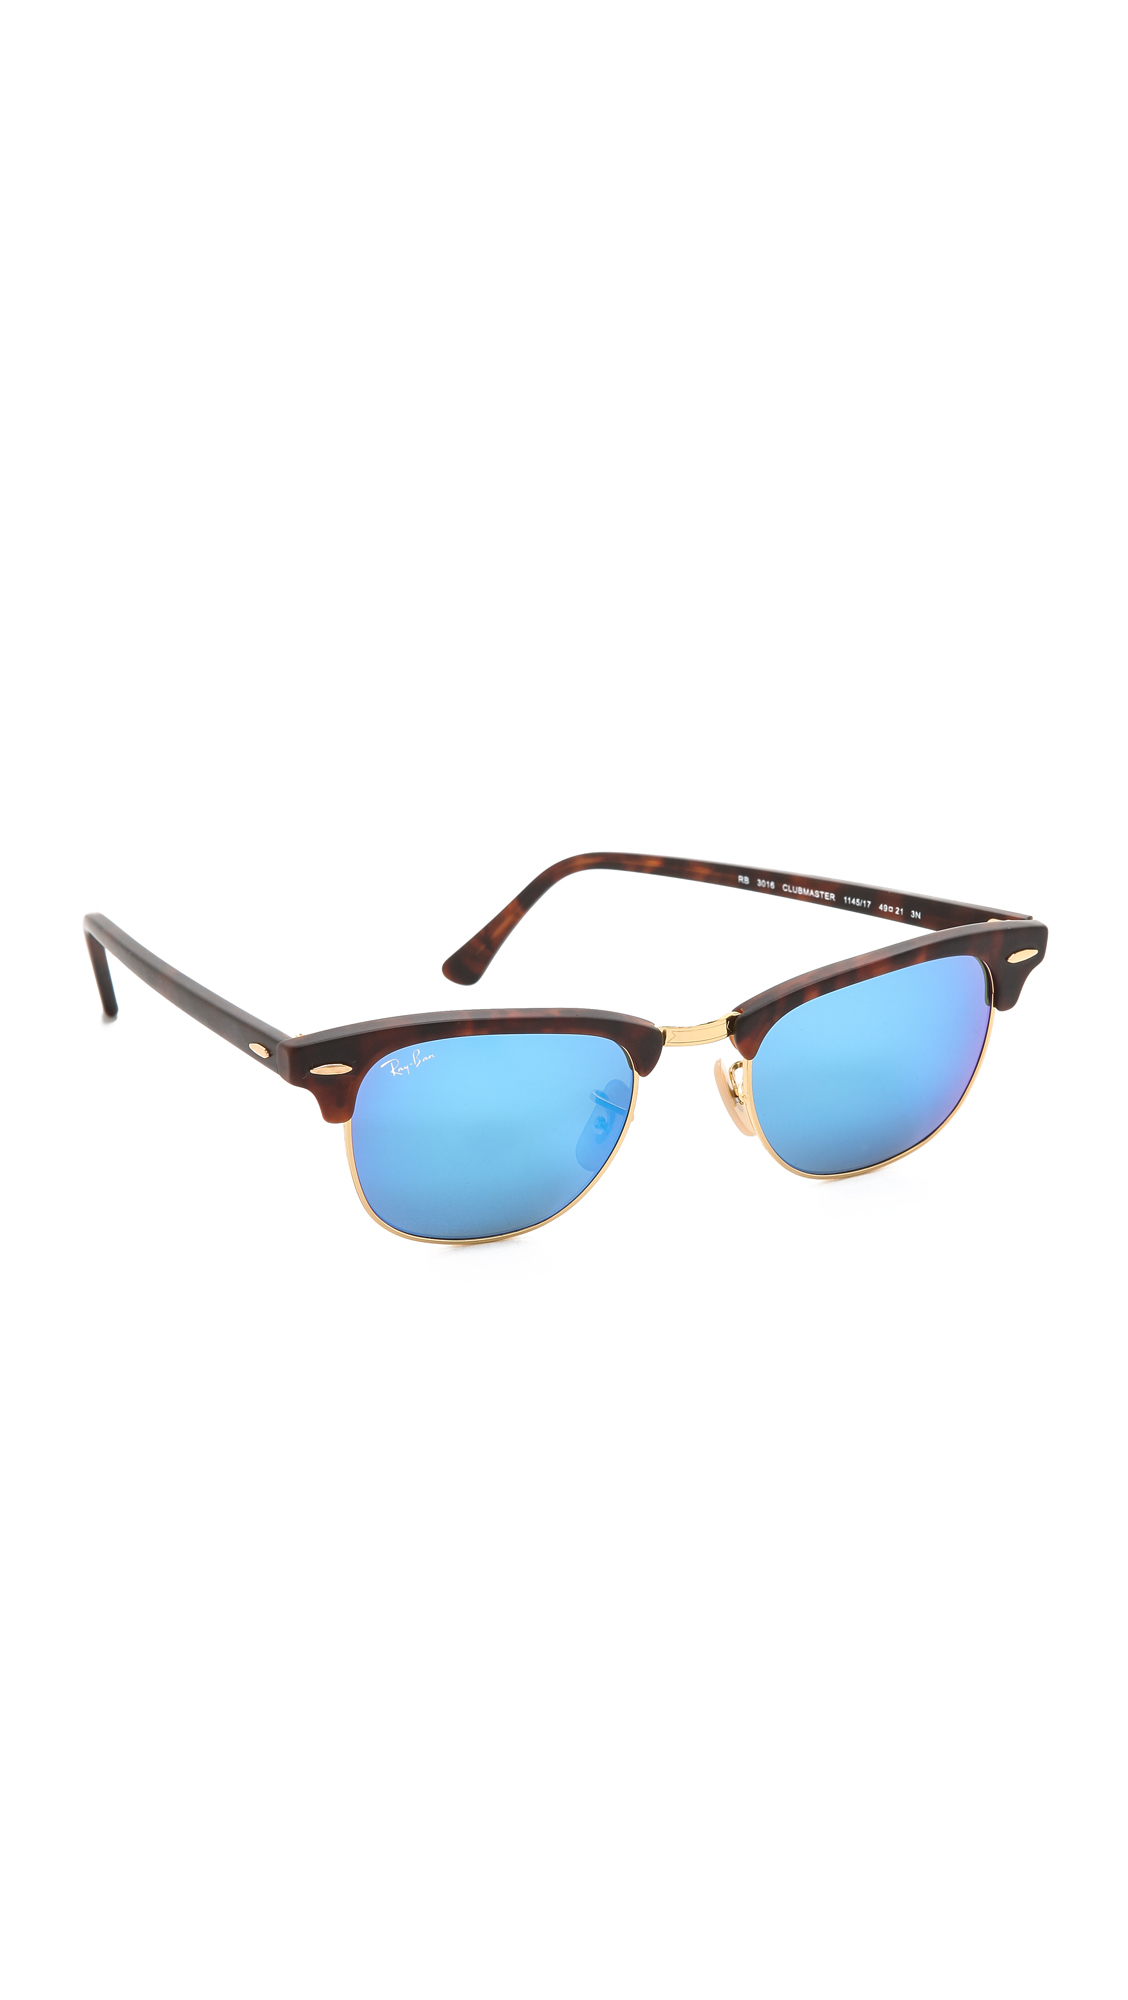 ray ban clubmaster best price  best price ray ban clubmaster mirrored